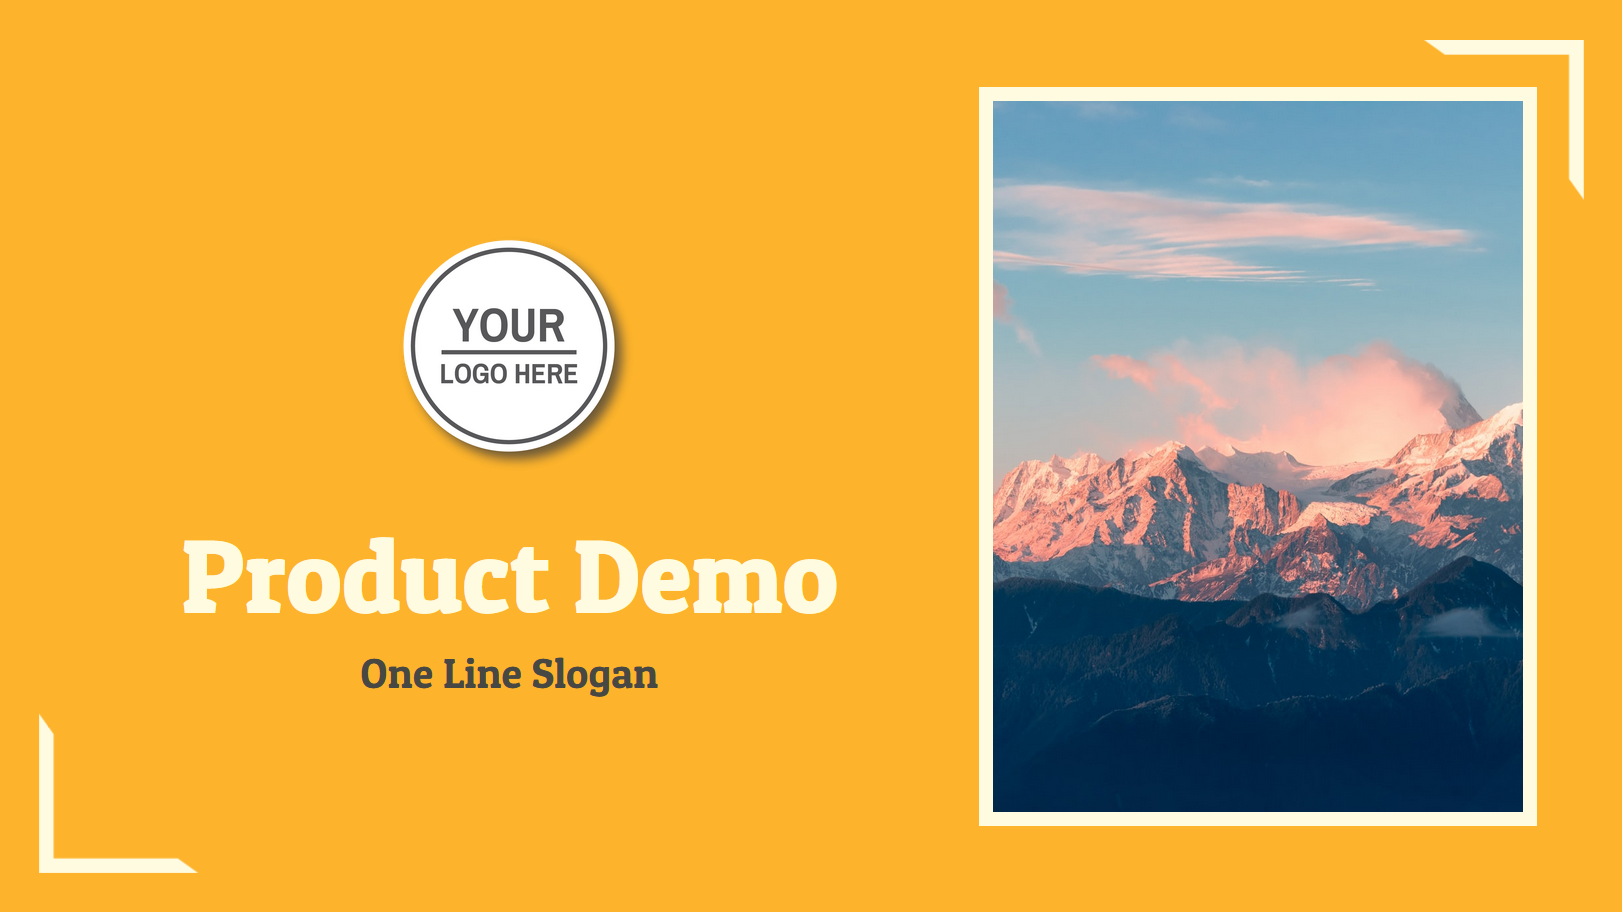 Deliver the problem, solution, features of the solution, and user testimonials. How is product filling the market gap and why is it the best product that can address the issue at hand.